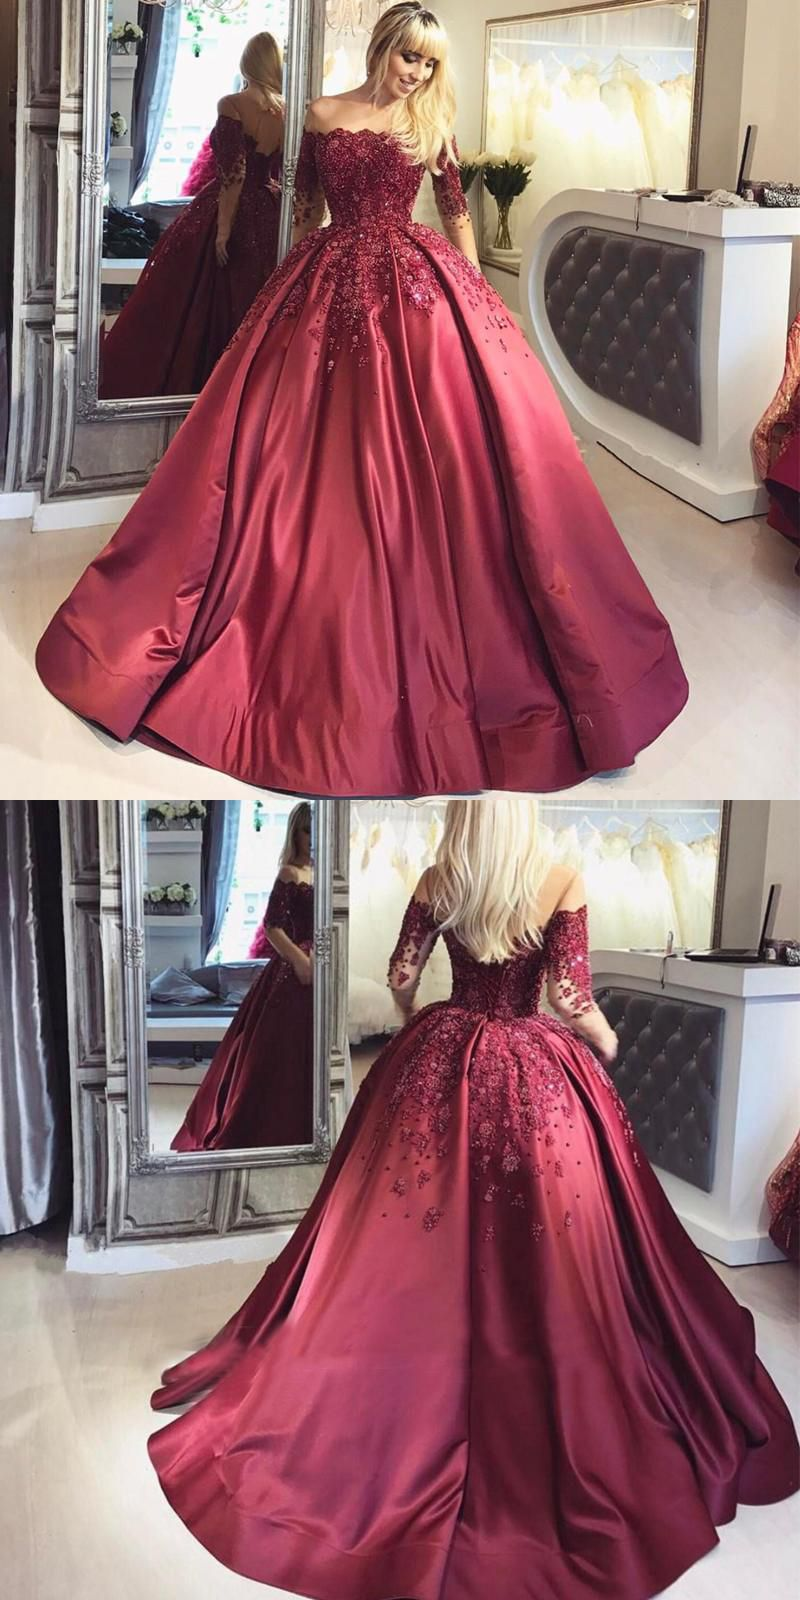 Glamorous ball gown offtheshoulder long sleeves burgundy prom